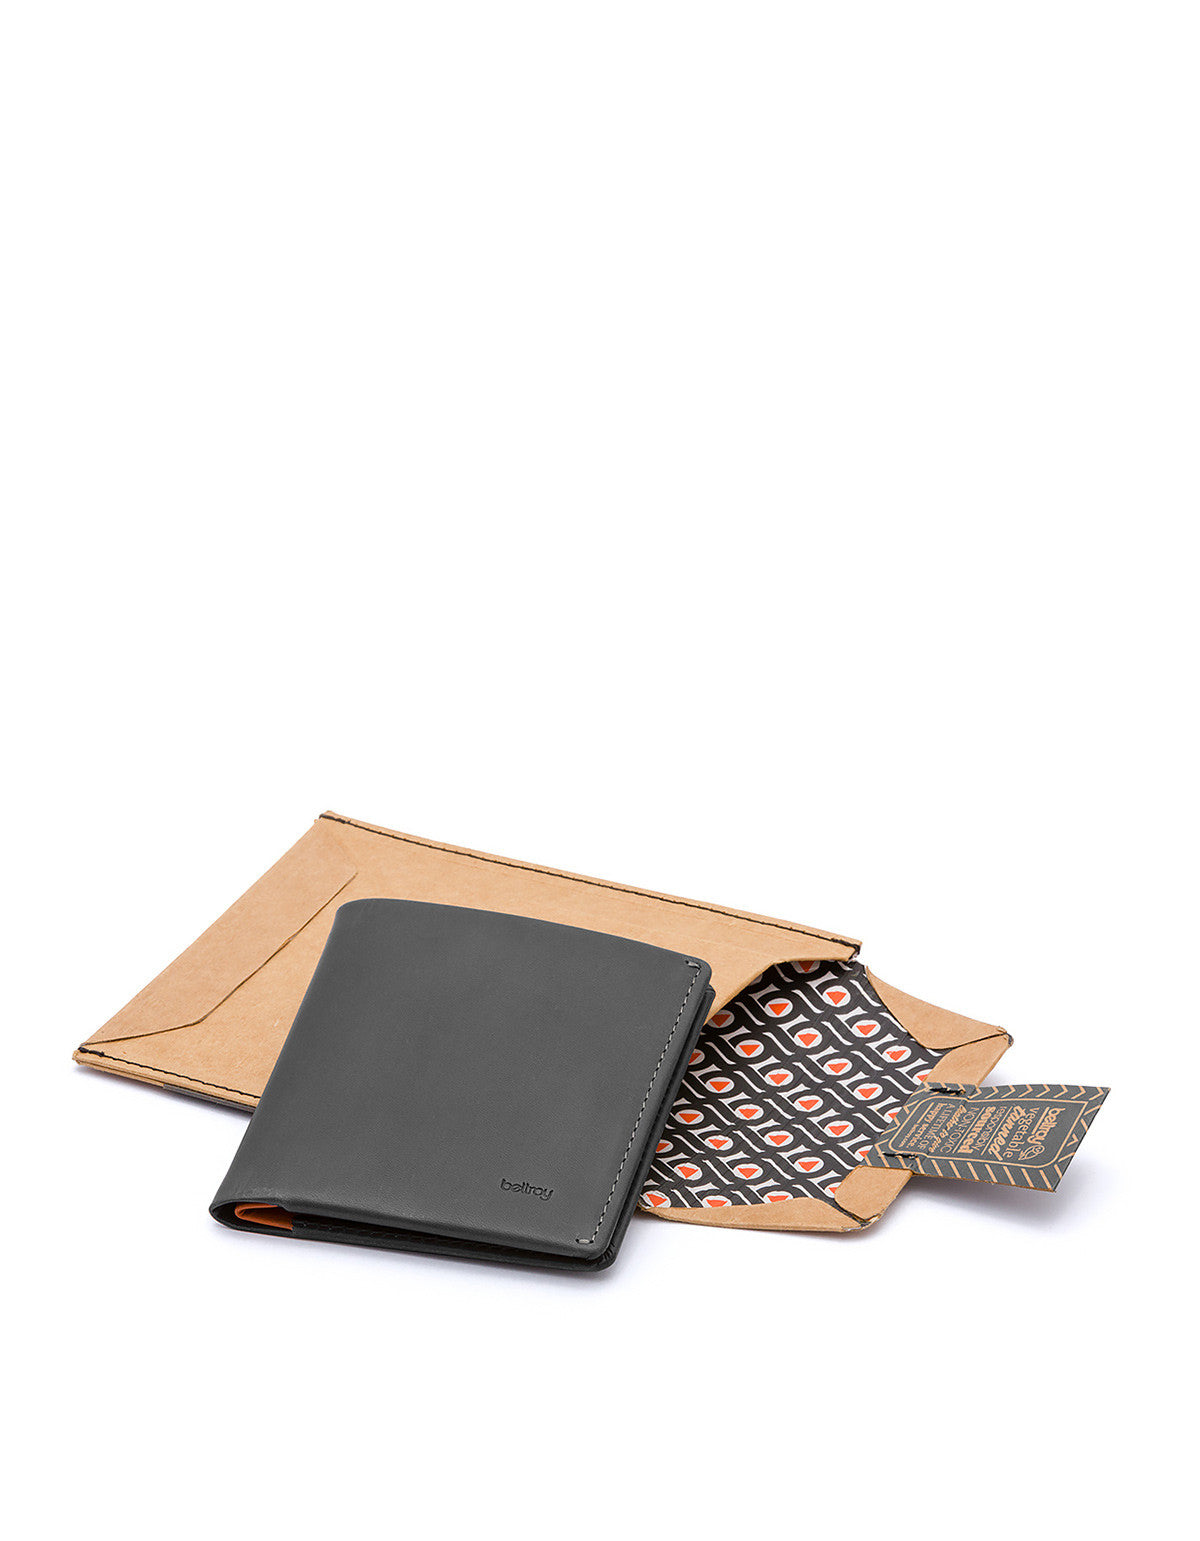 Bellroy Note Sleeve Wallet Charcoal - Still Life - 5